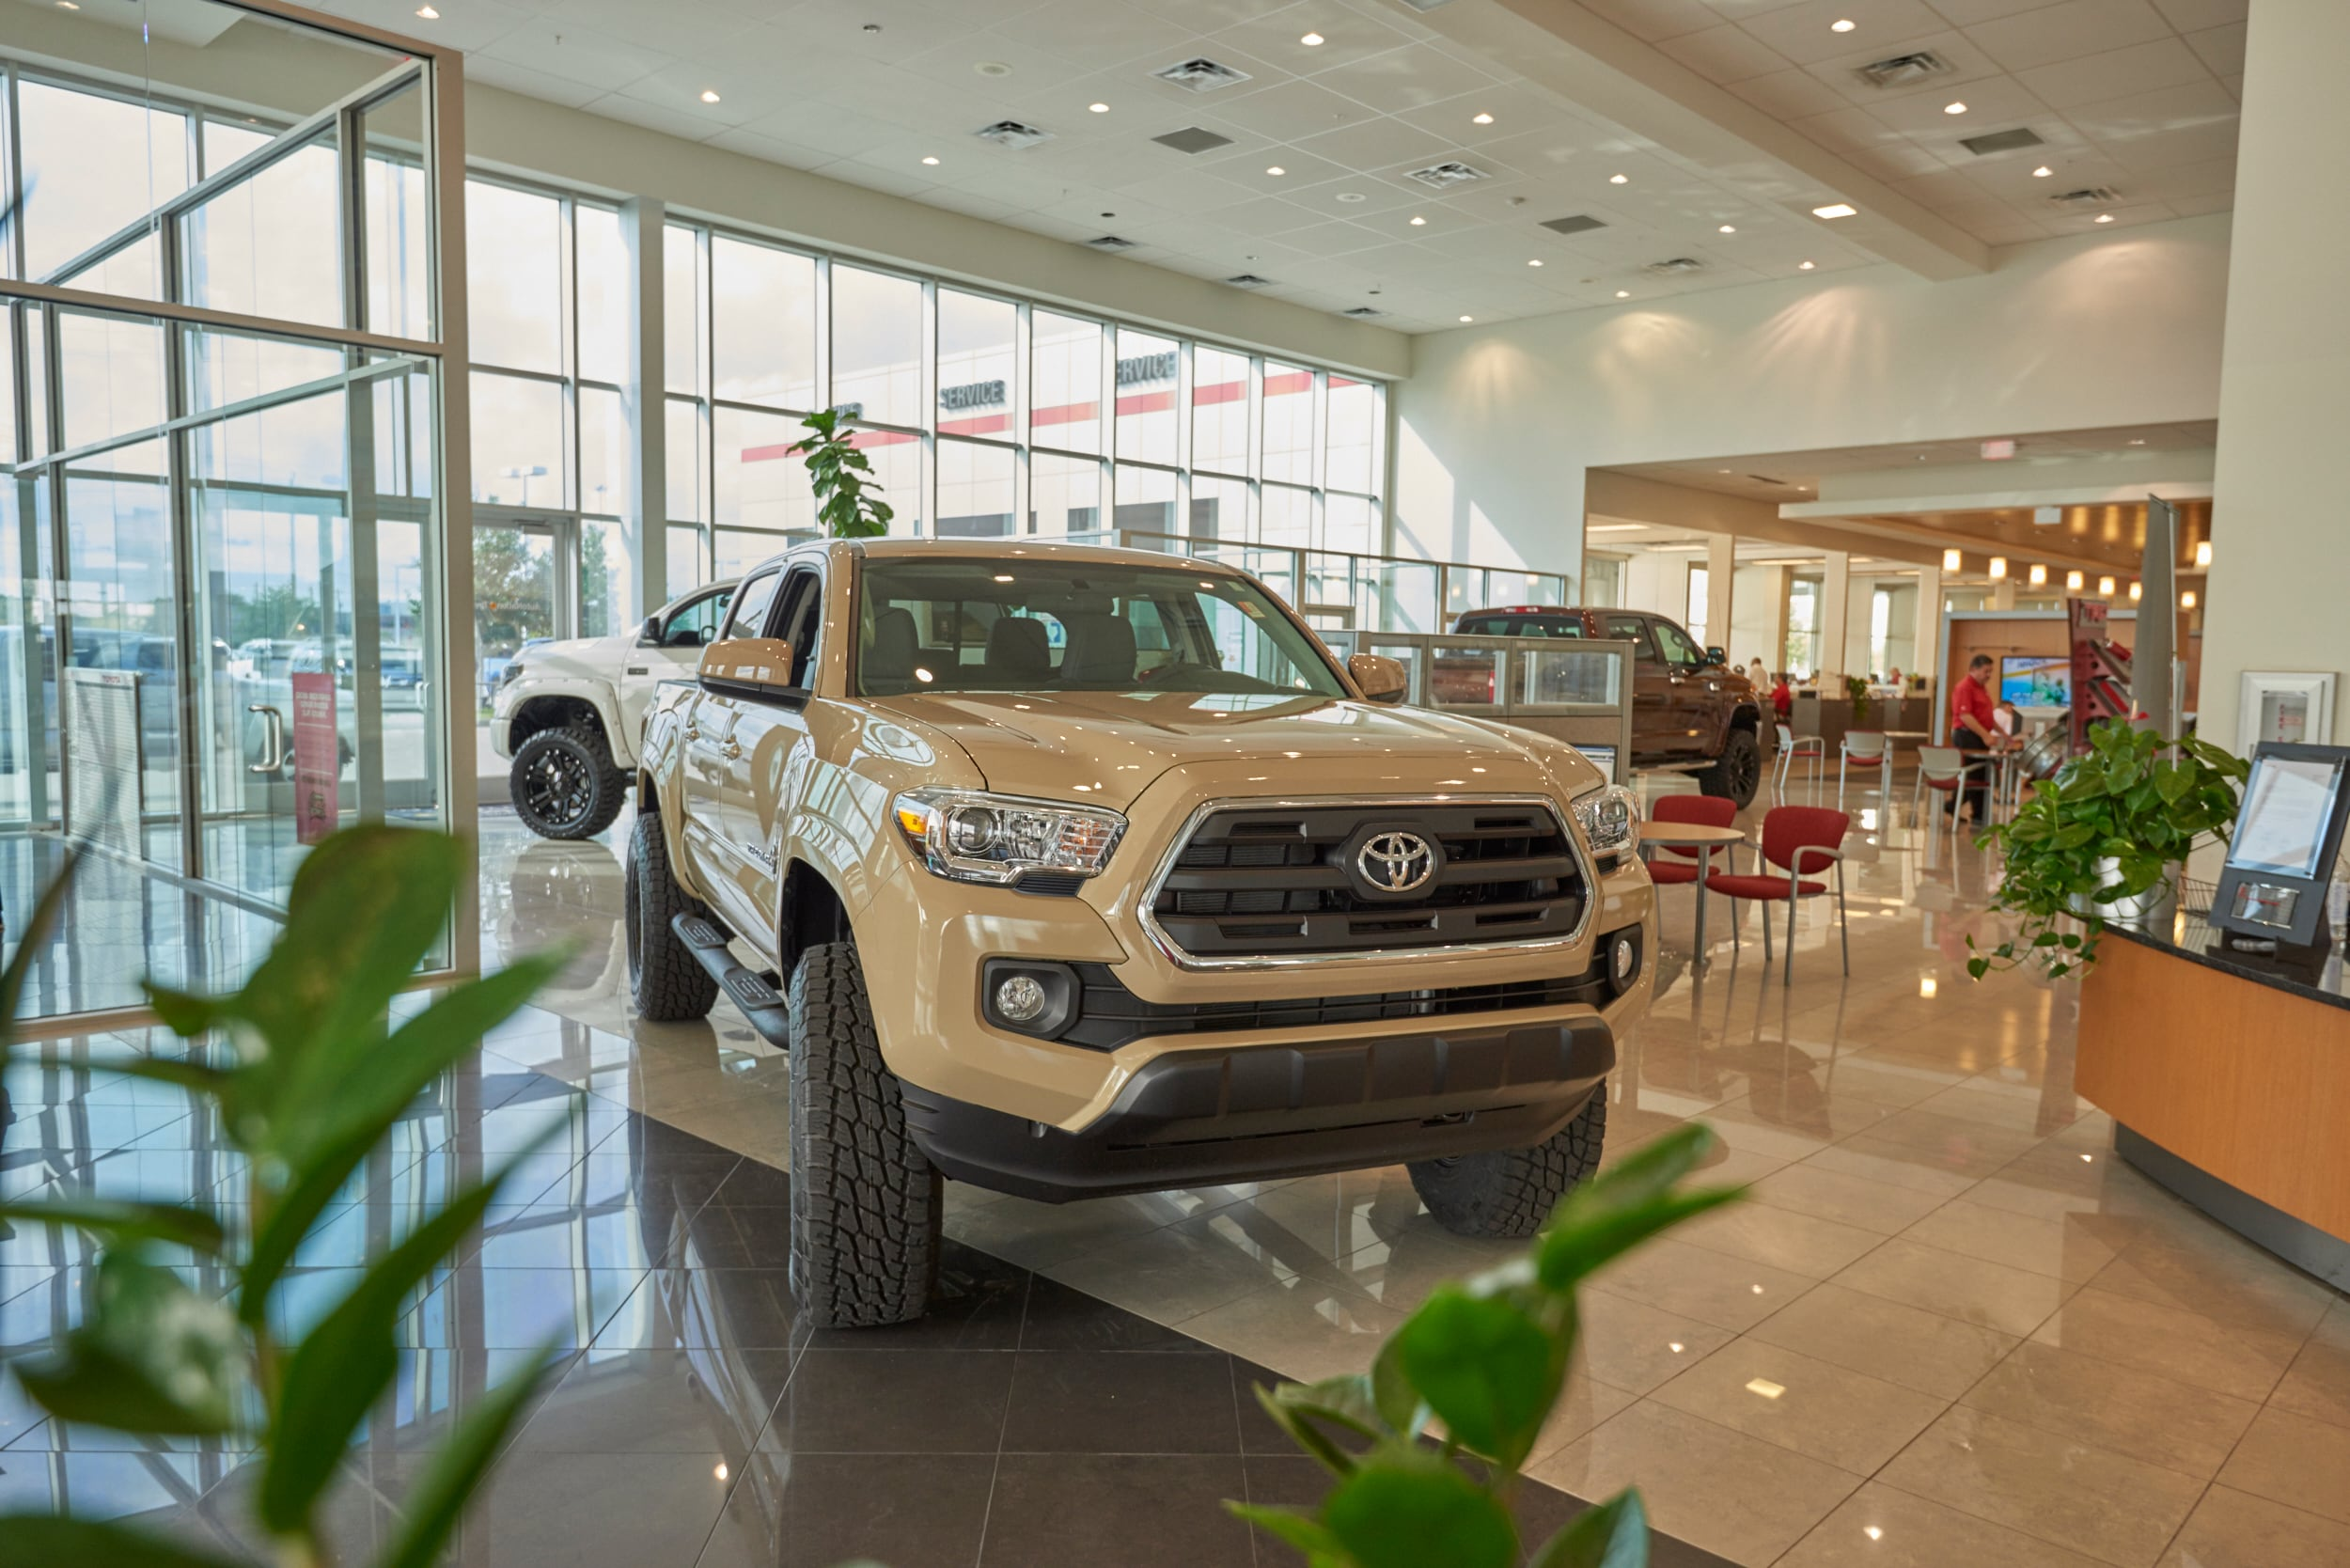 specials used car usedtoyotahouston available toyota dealership at unbelievable houston